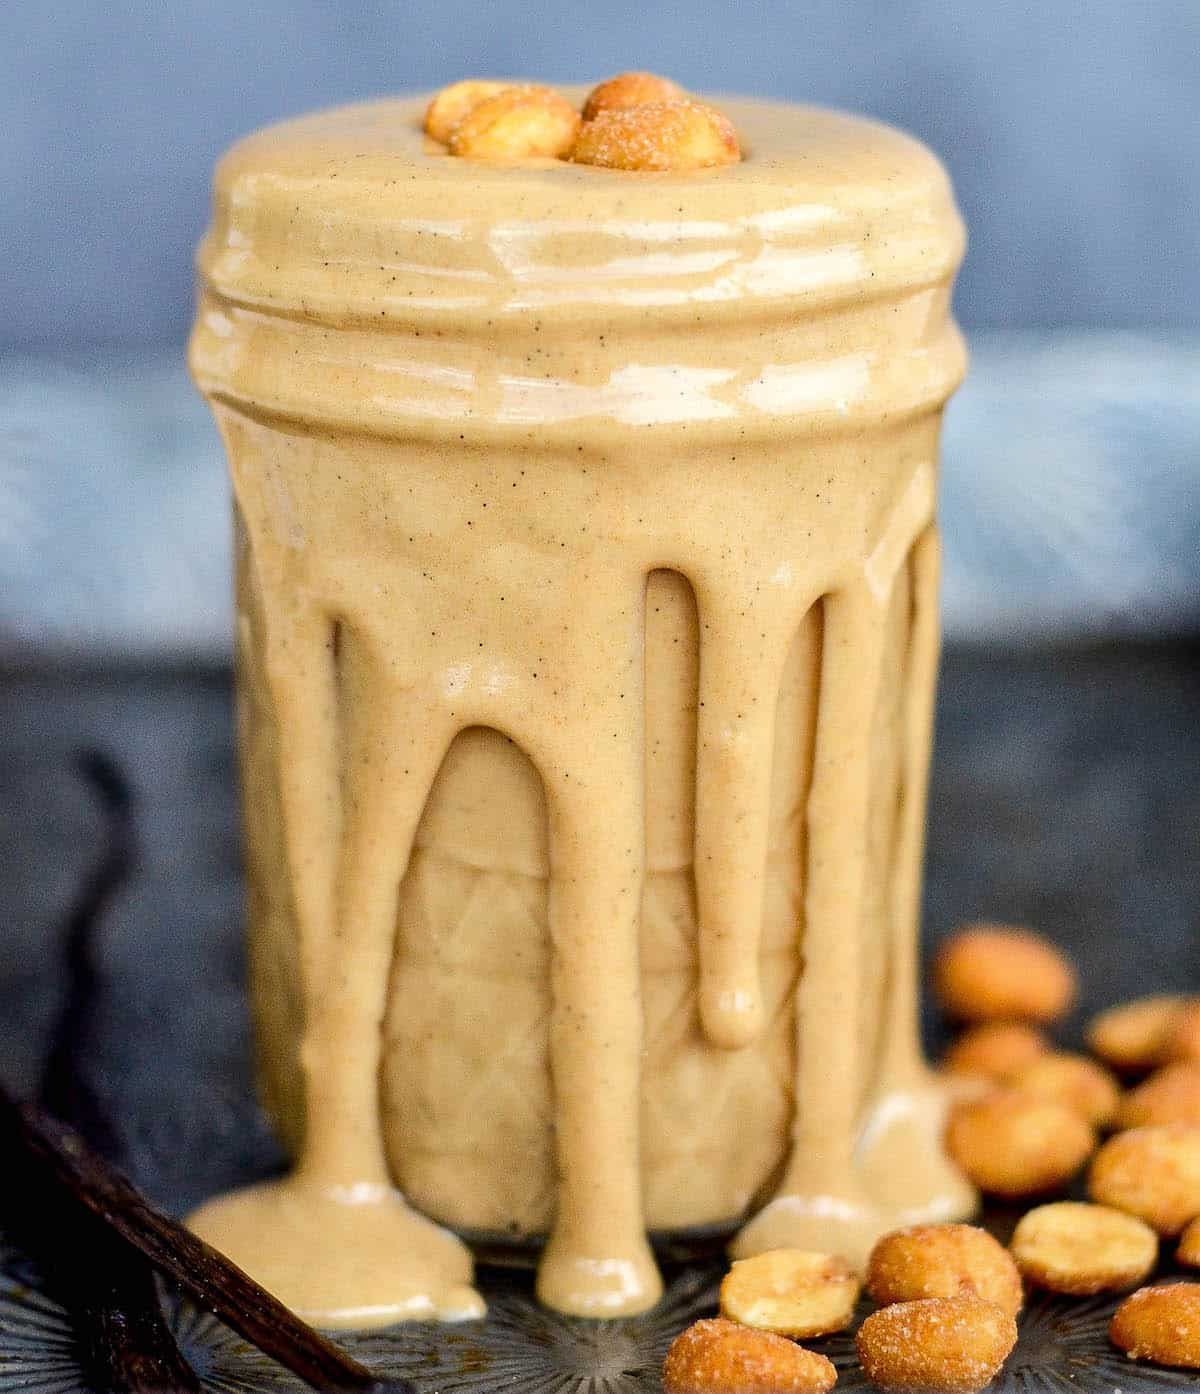 Front view of a jar with peanut butter dripping down the sides.